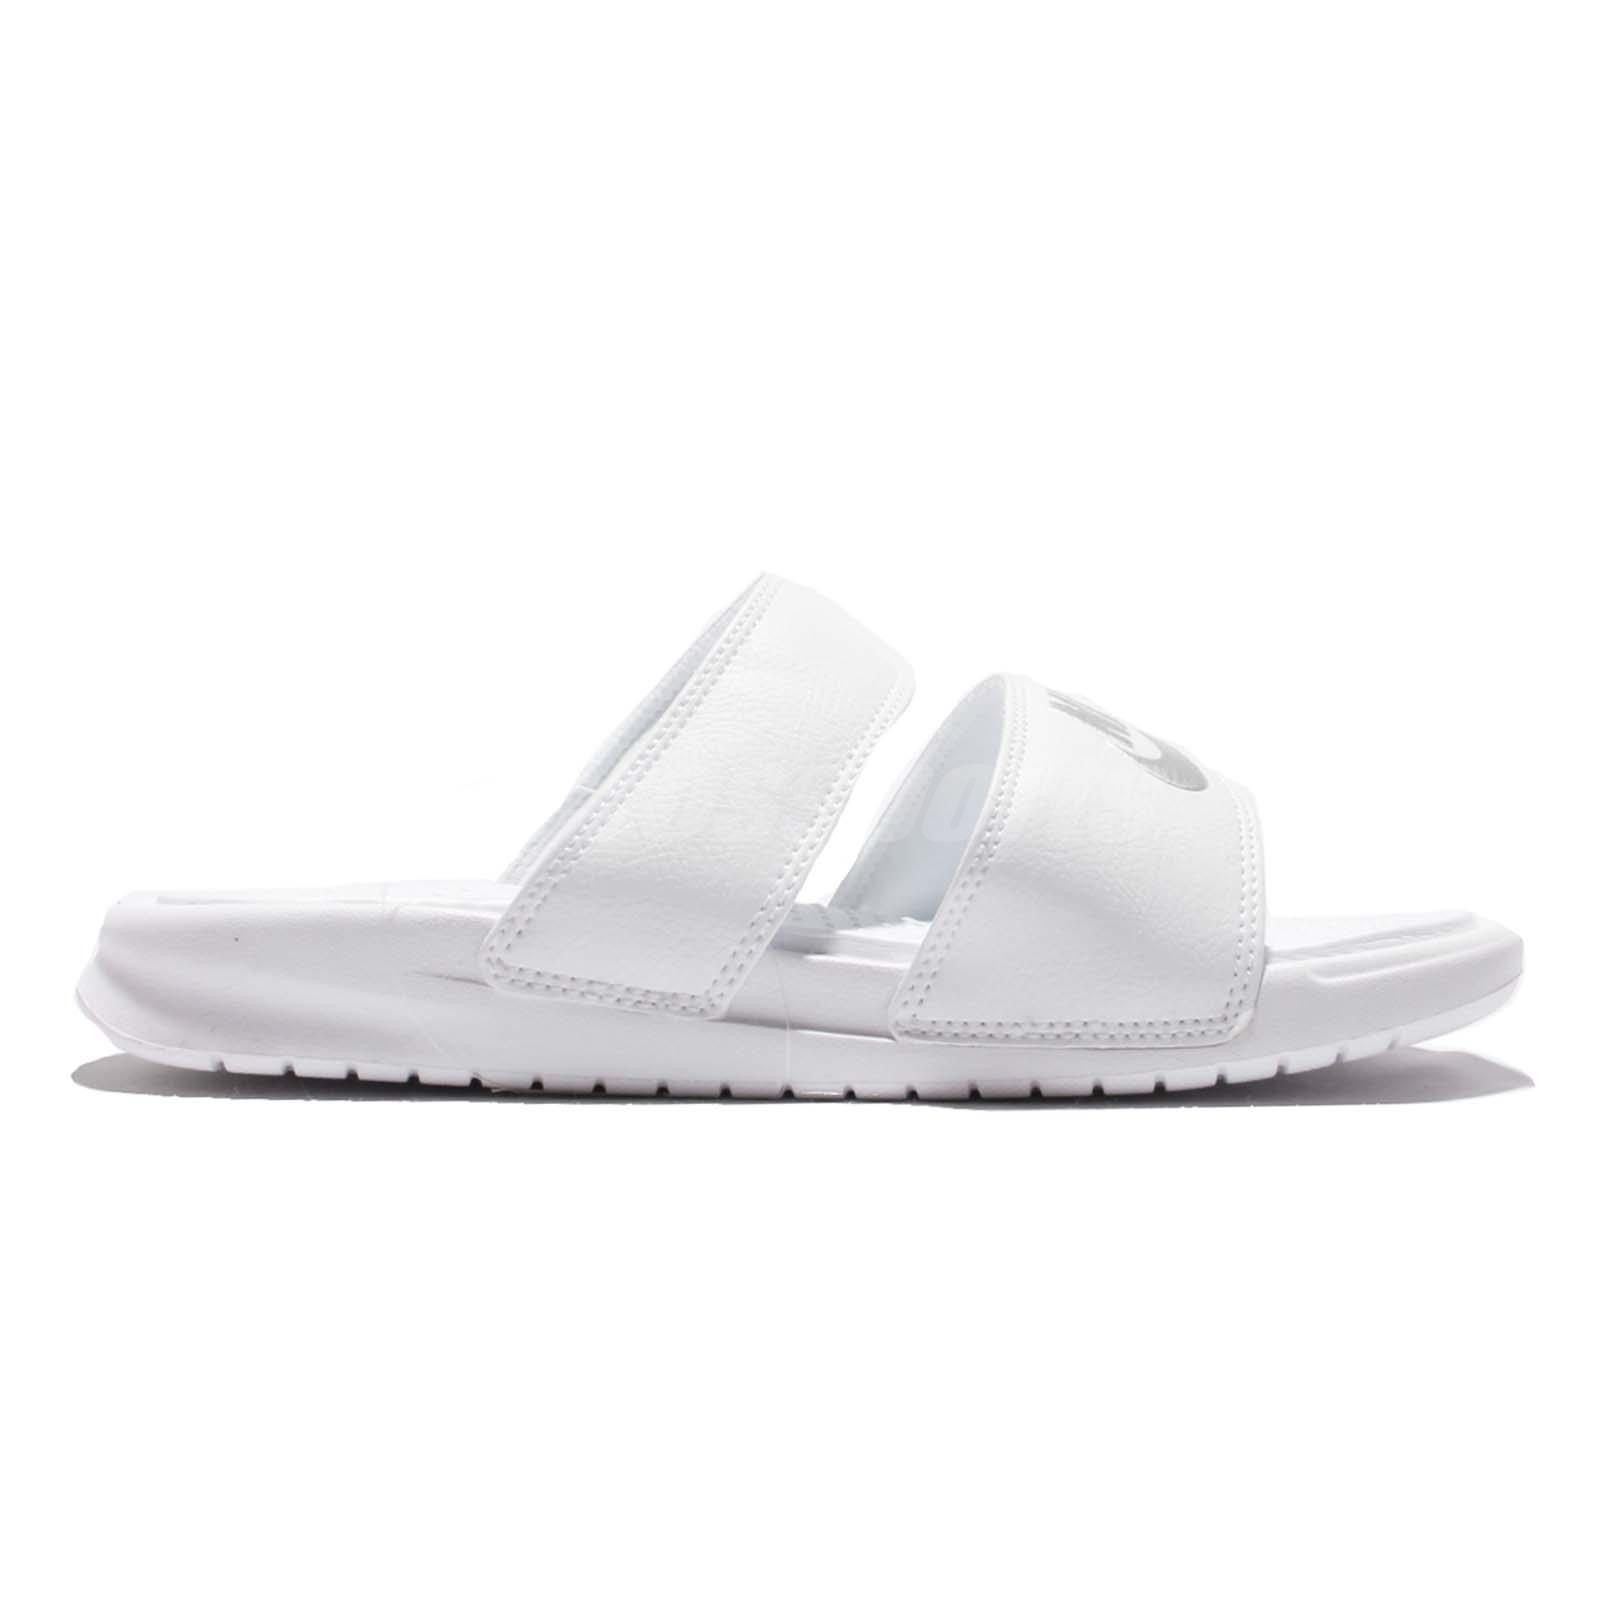 ddafe505b65aa9 Wmns Nike Benassi Duo Ultra Slide Women Triple White Sandal Slippers ...